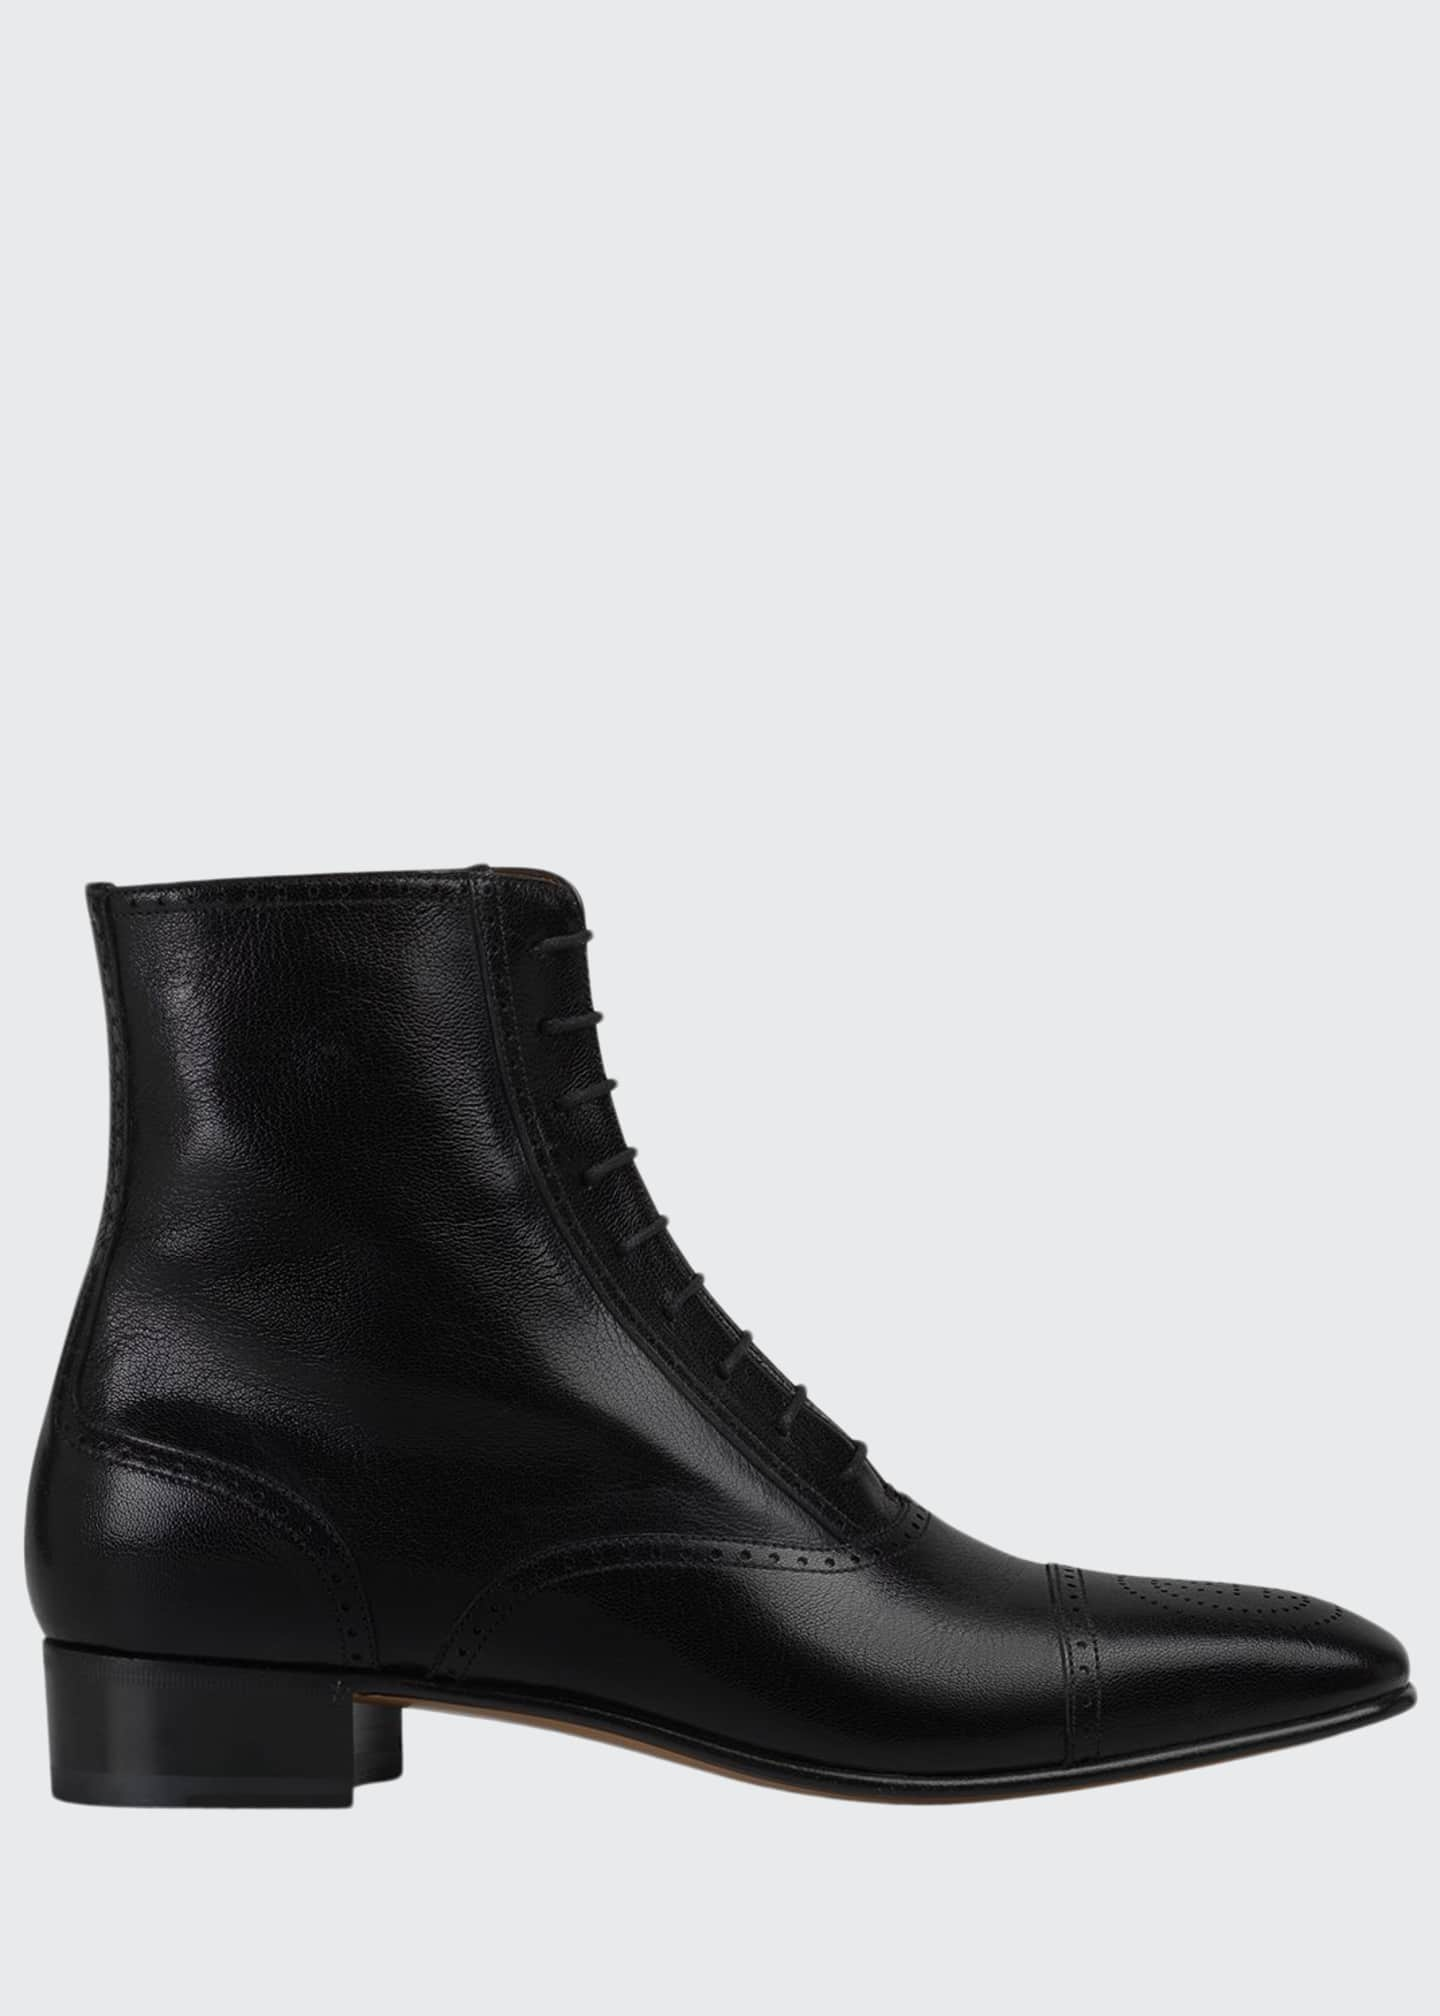 Gucci Men's Dracma Brogue Leather Ankle Boots